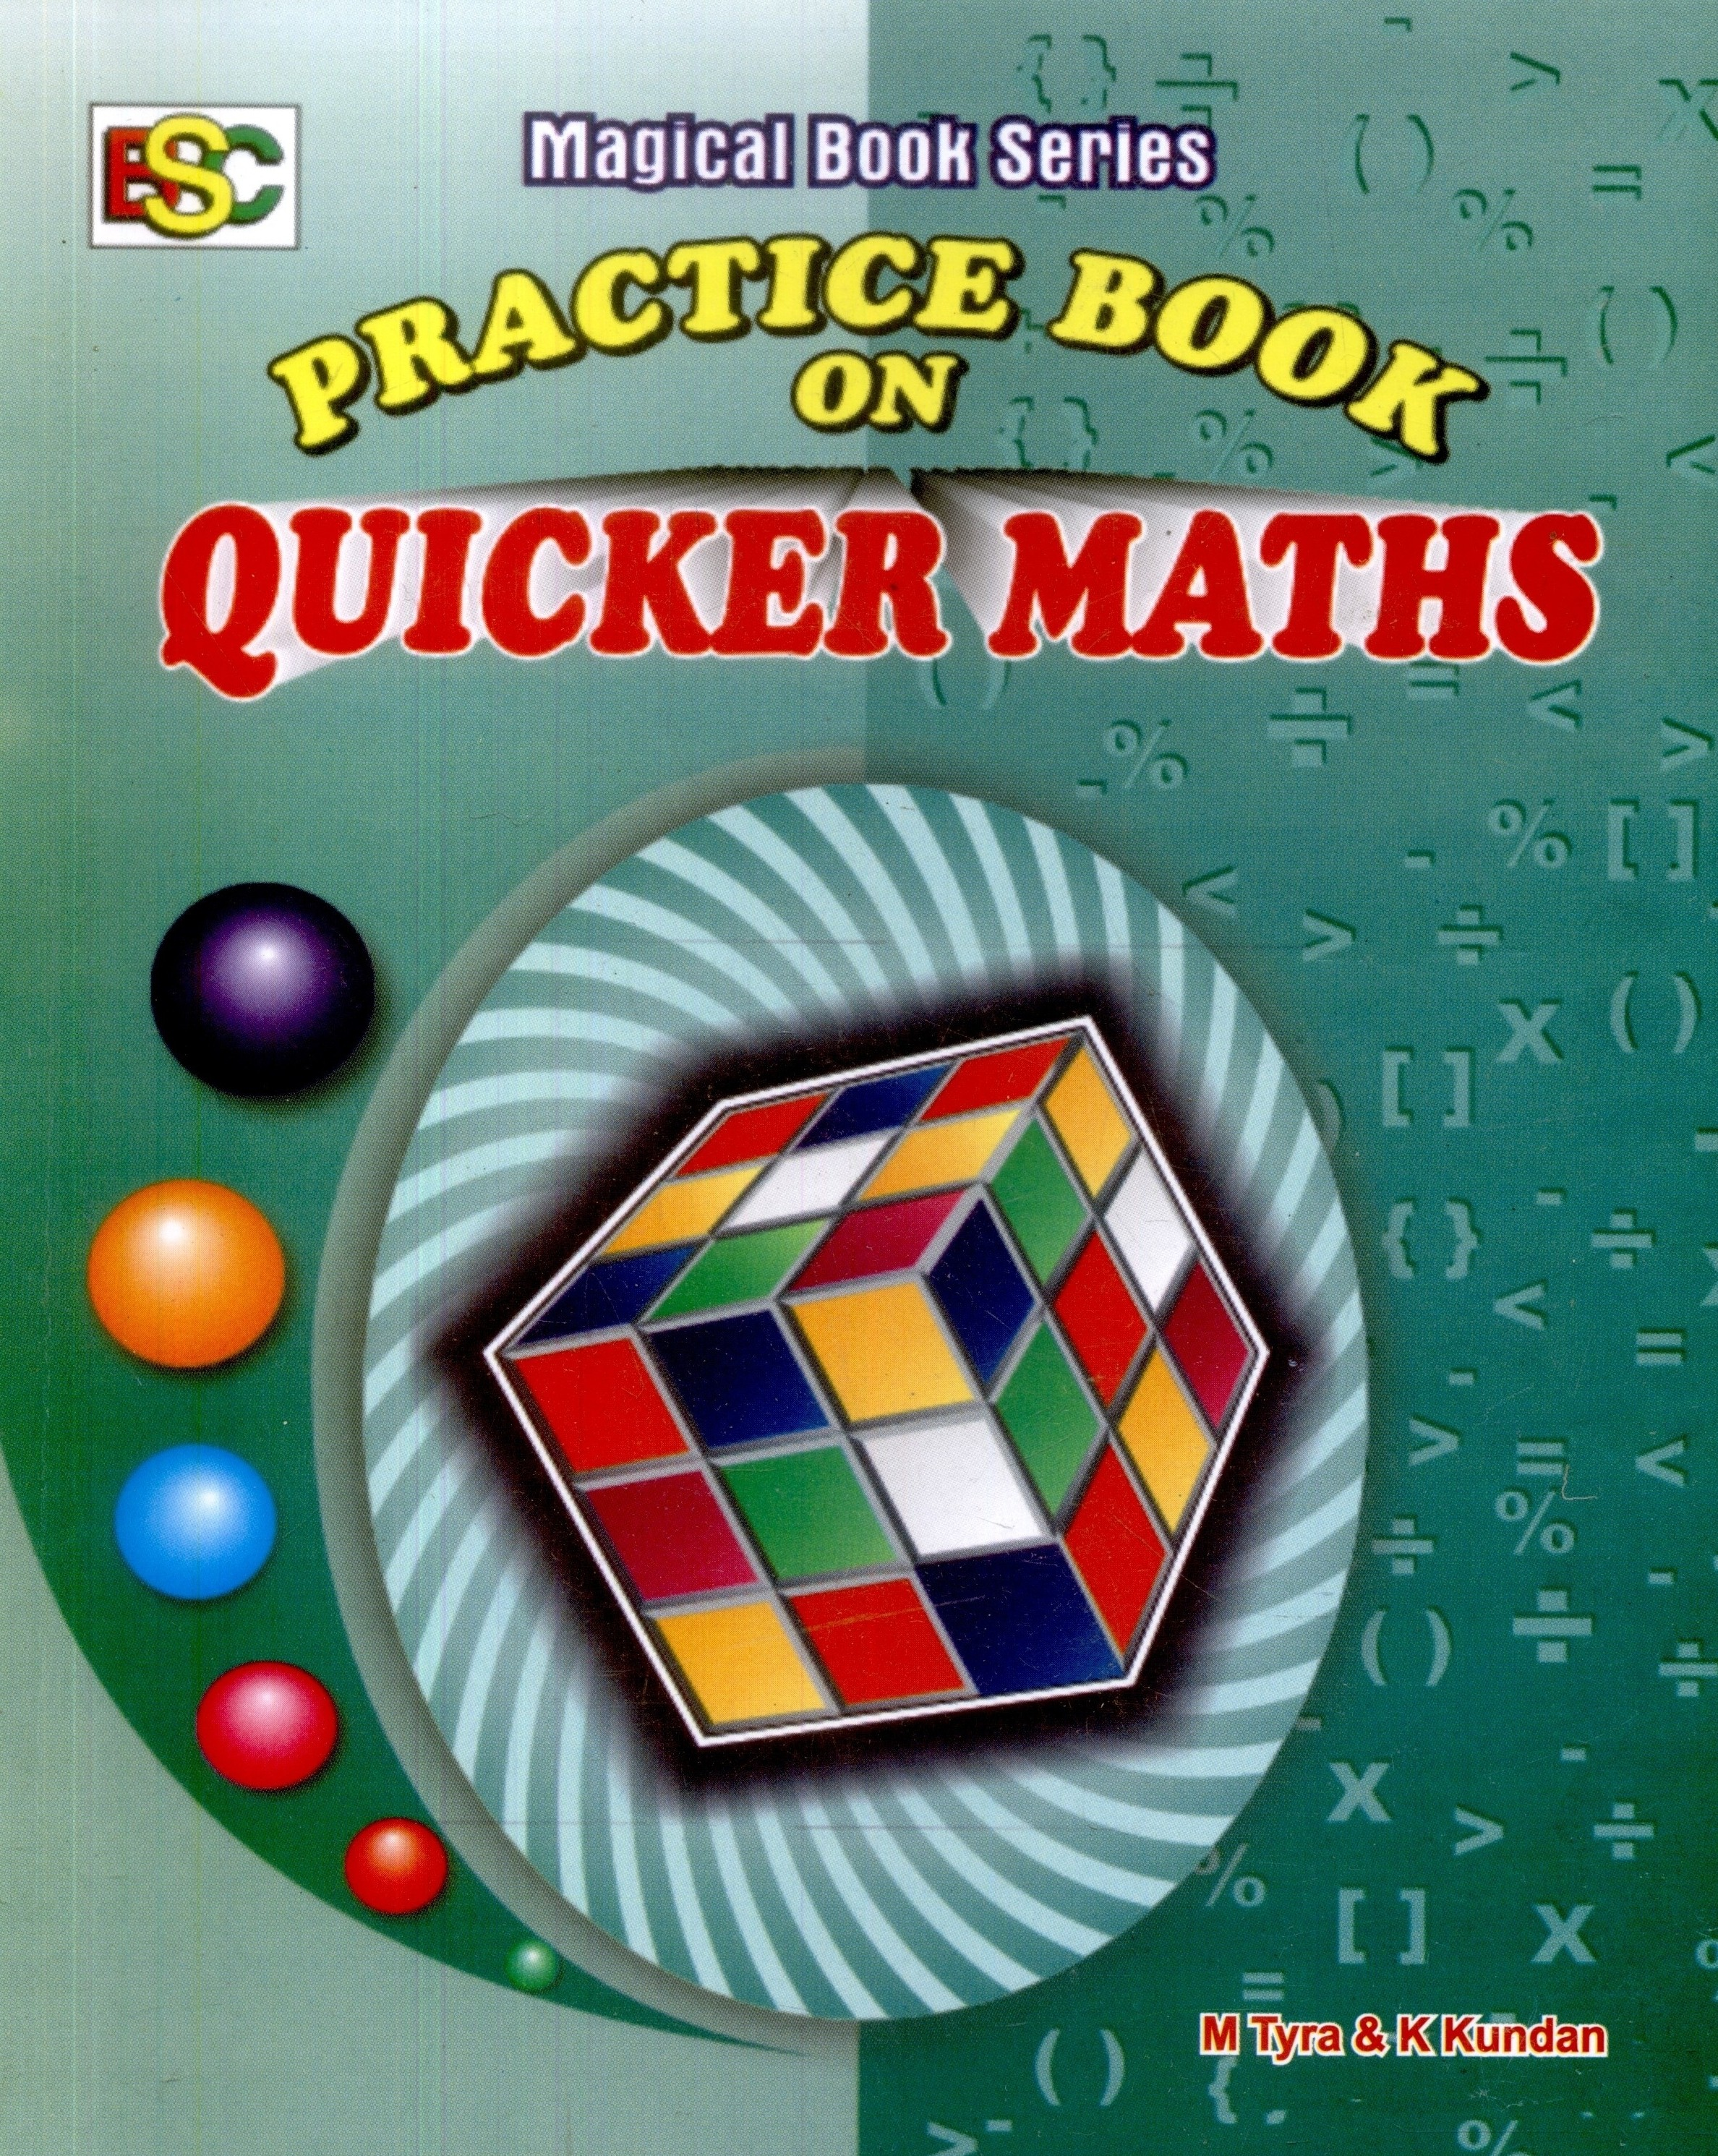 Magical Book on Quicker Maths by M Tyra